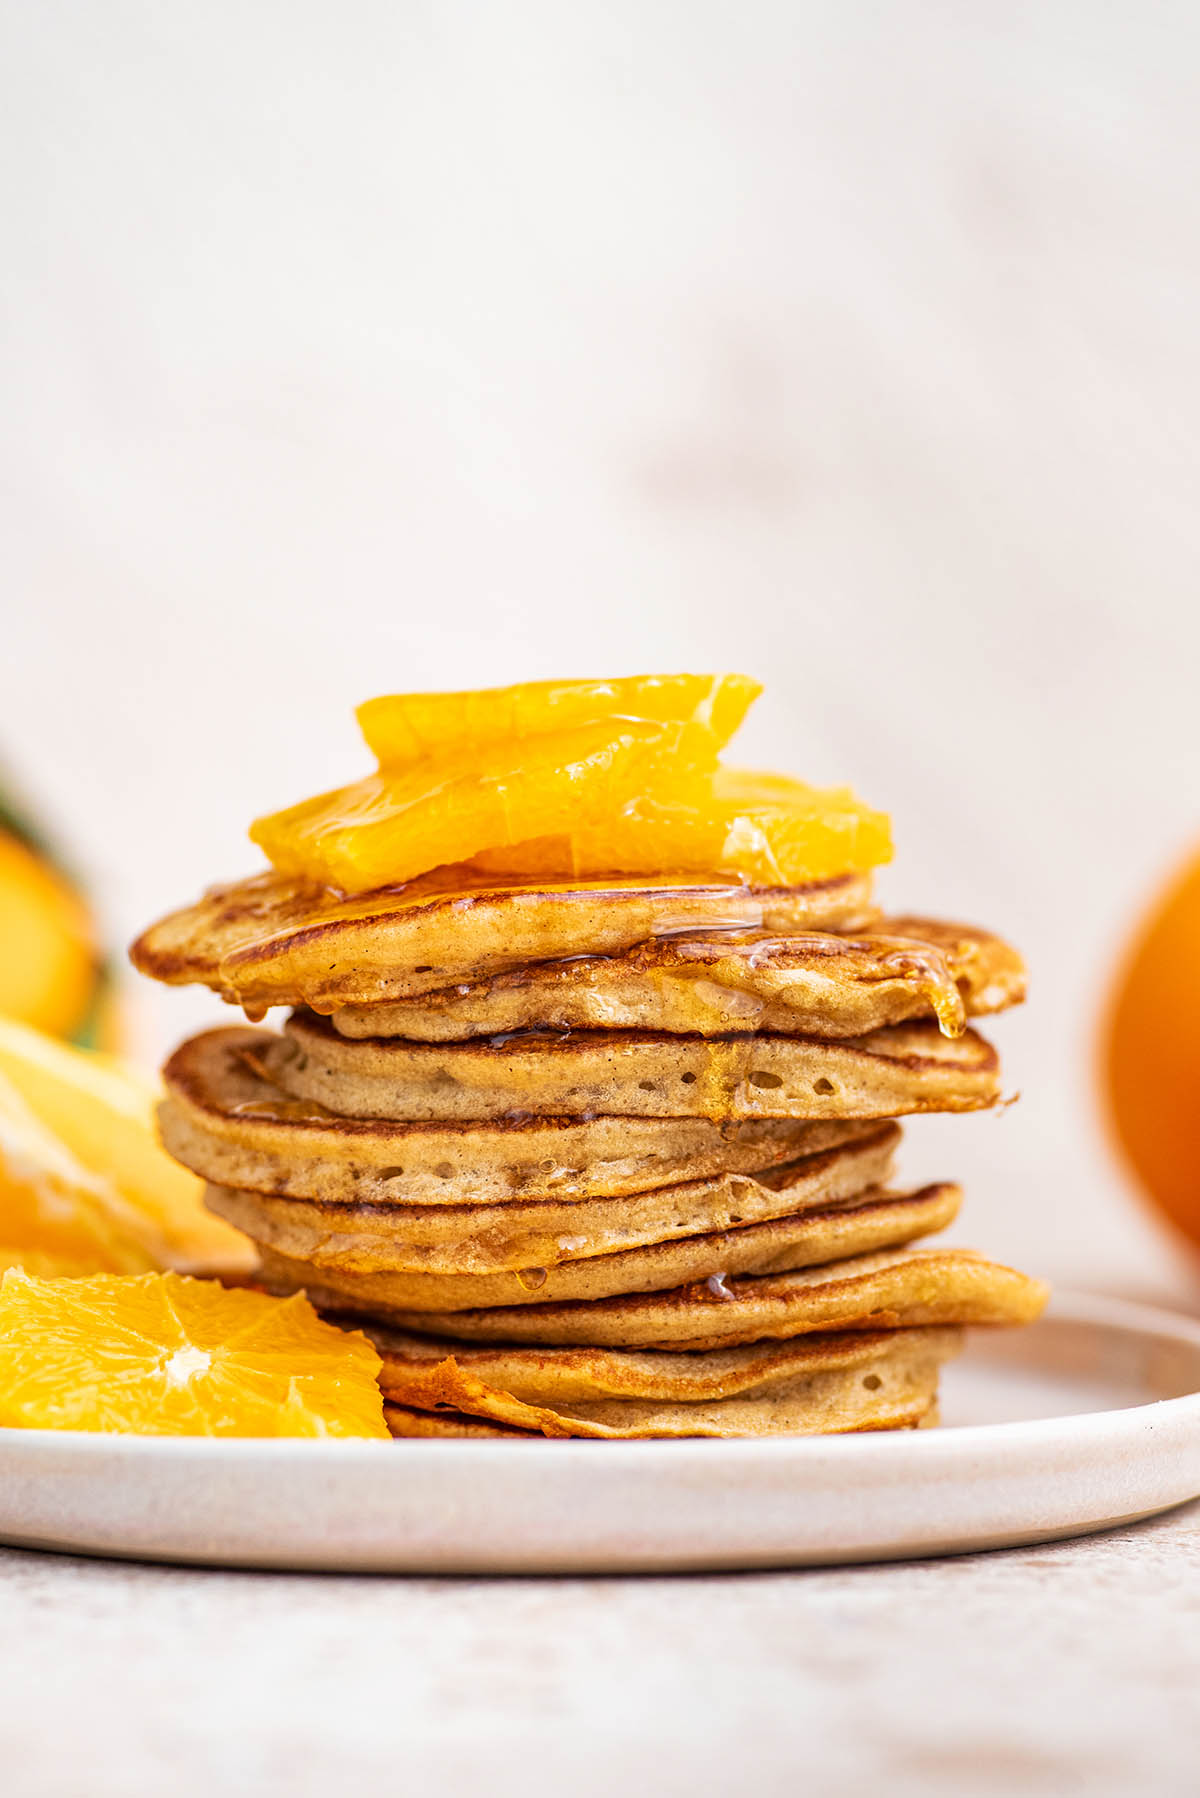 A stack of sourdough starter pancakes and oranges slices.